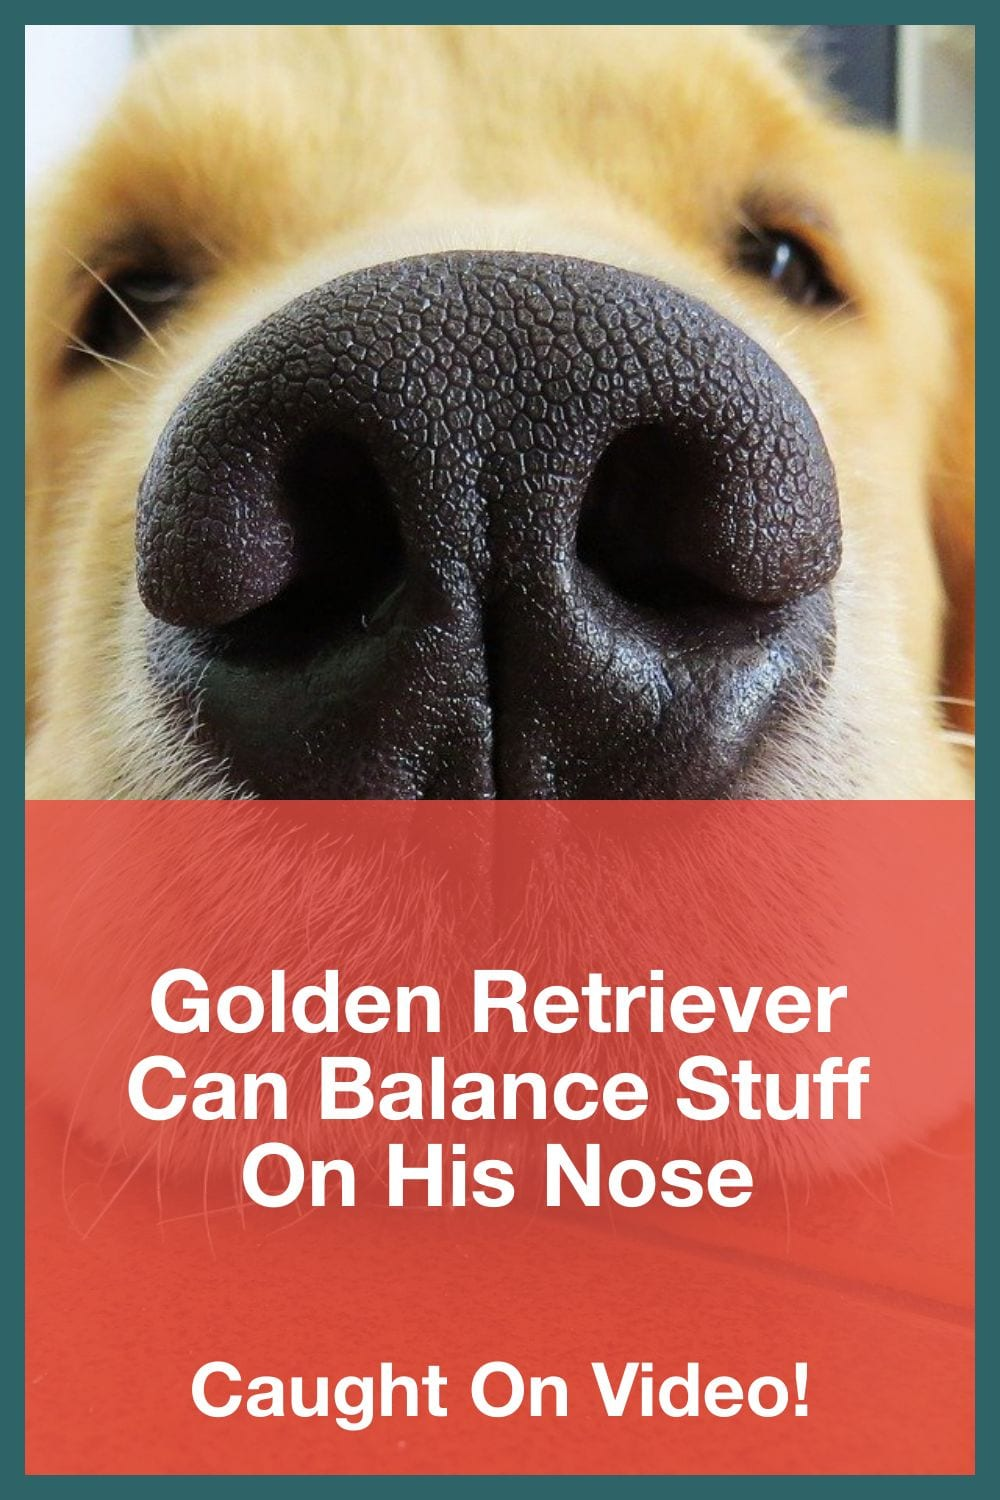 Golden Retriever Can Balance Stuff On His Nose